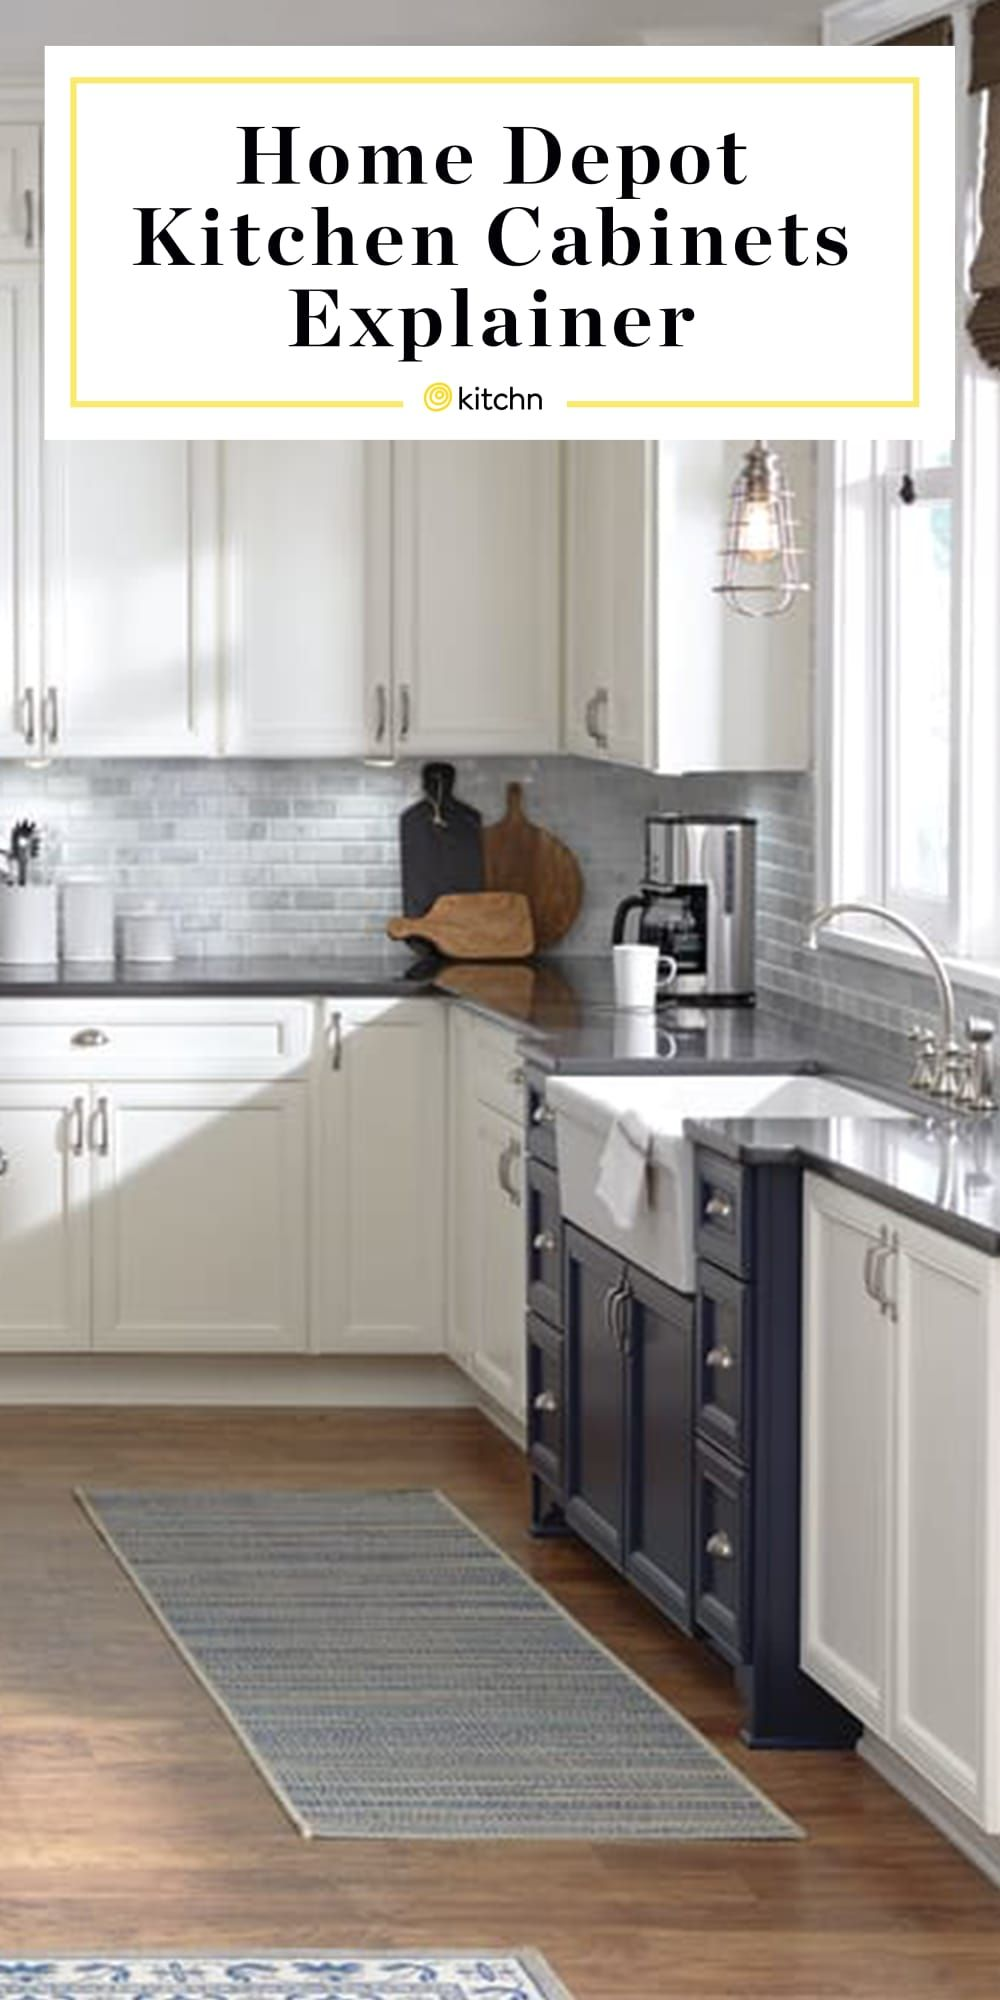 Everything You Need To Know About Home Depot Kitchen Cabinets Kitchen Cabinets Home Depot Home Depot Kitchen Cheap Kitchen Cabinets